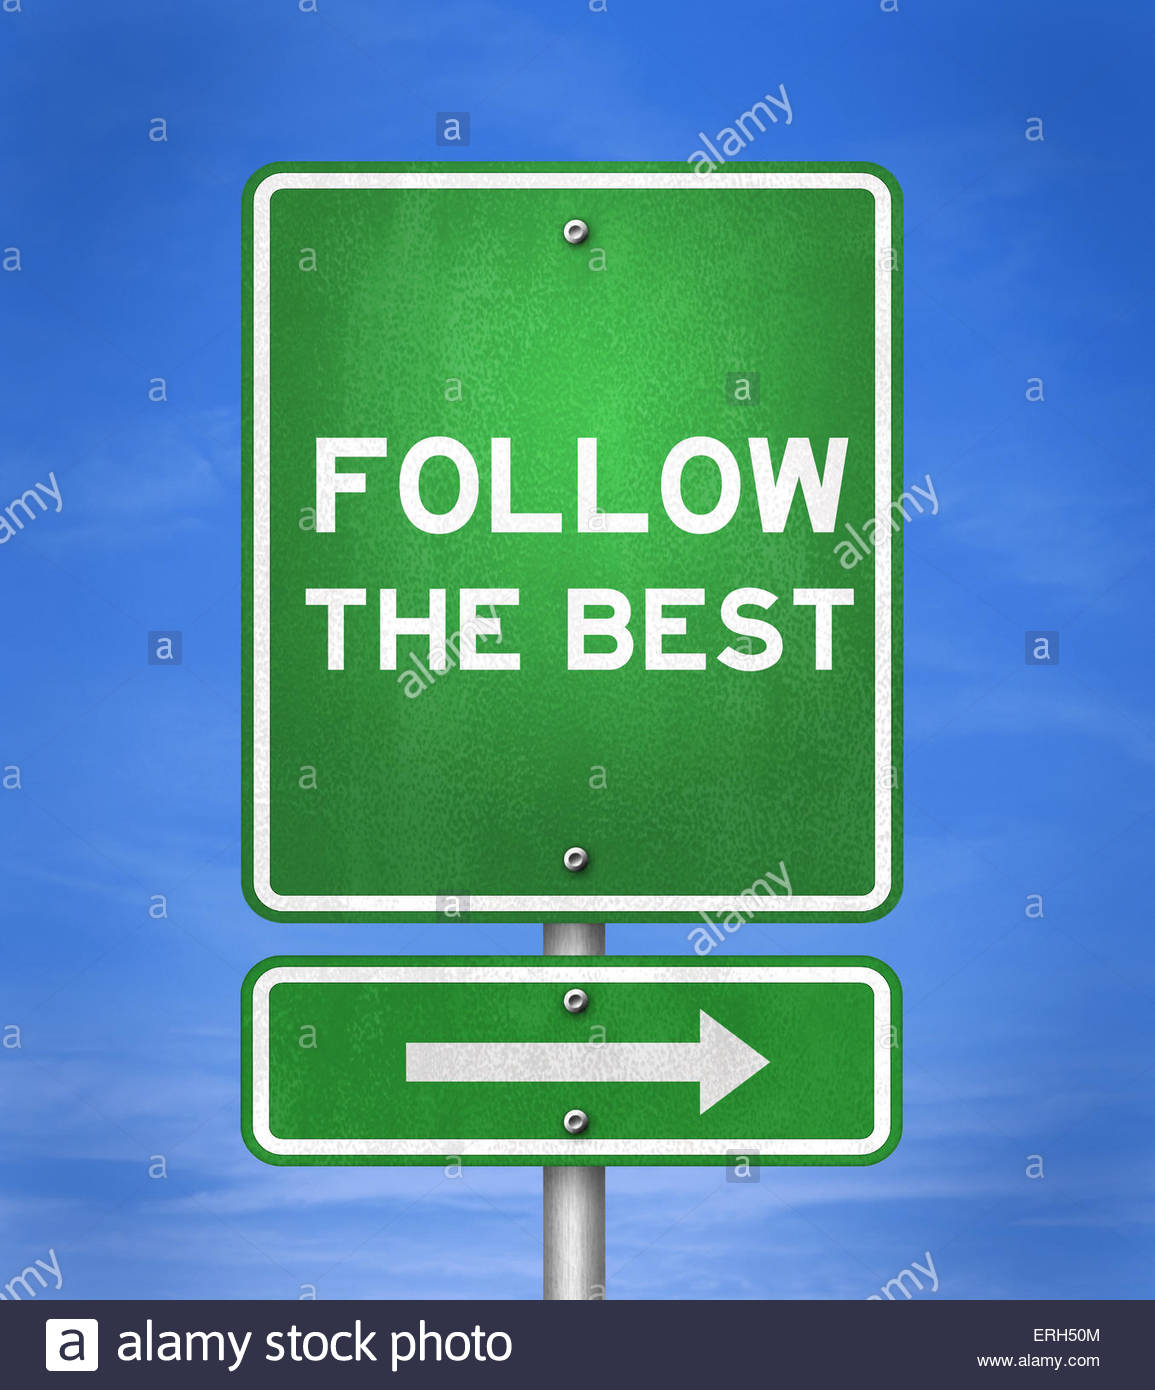 Follow the best - Stock Image